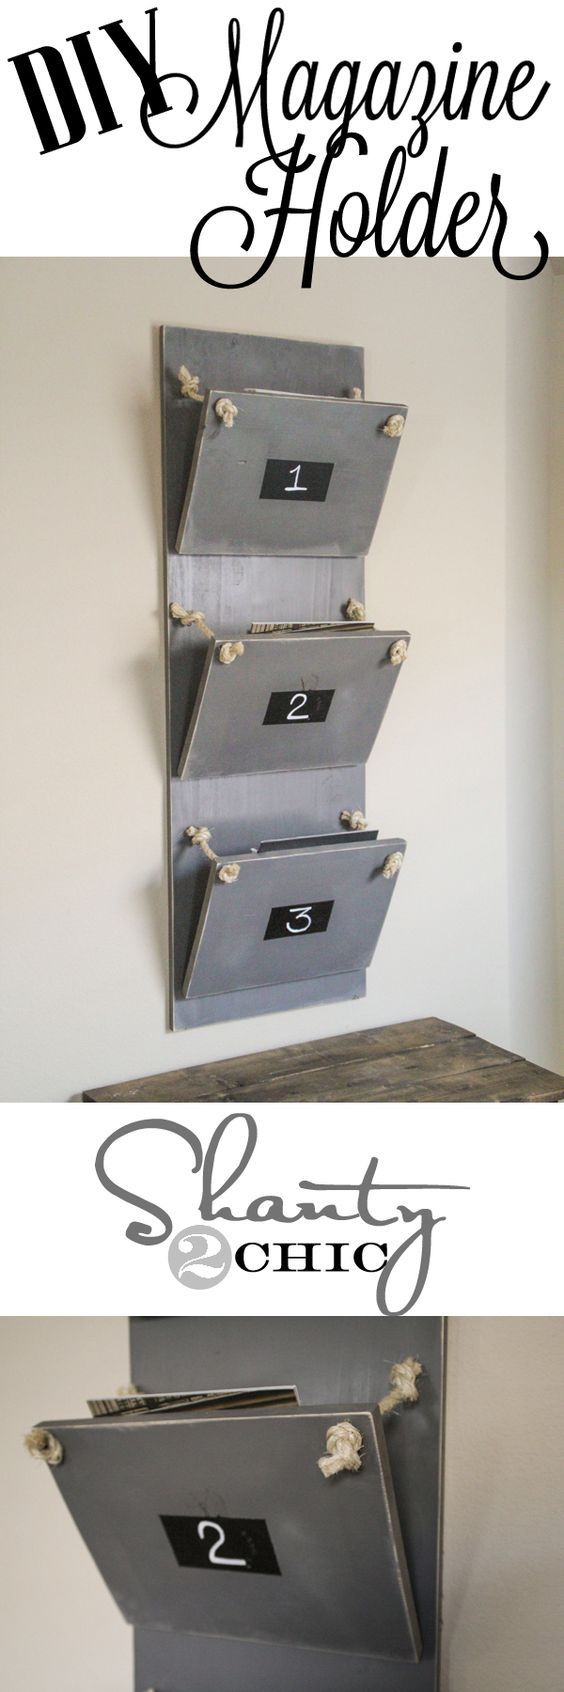 DIY Home Decor - Magazine Holder